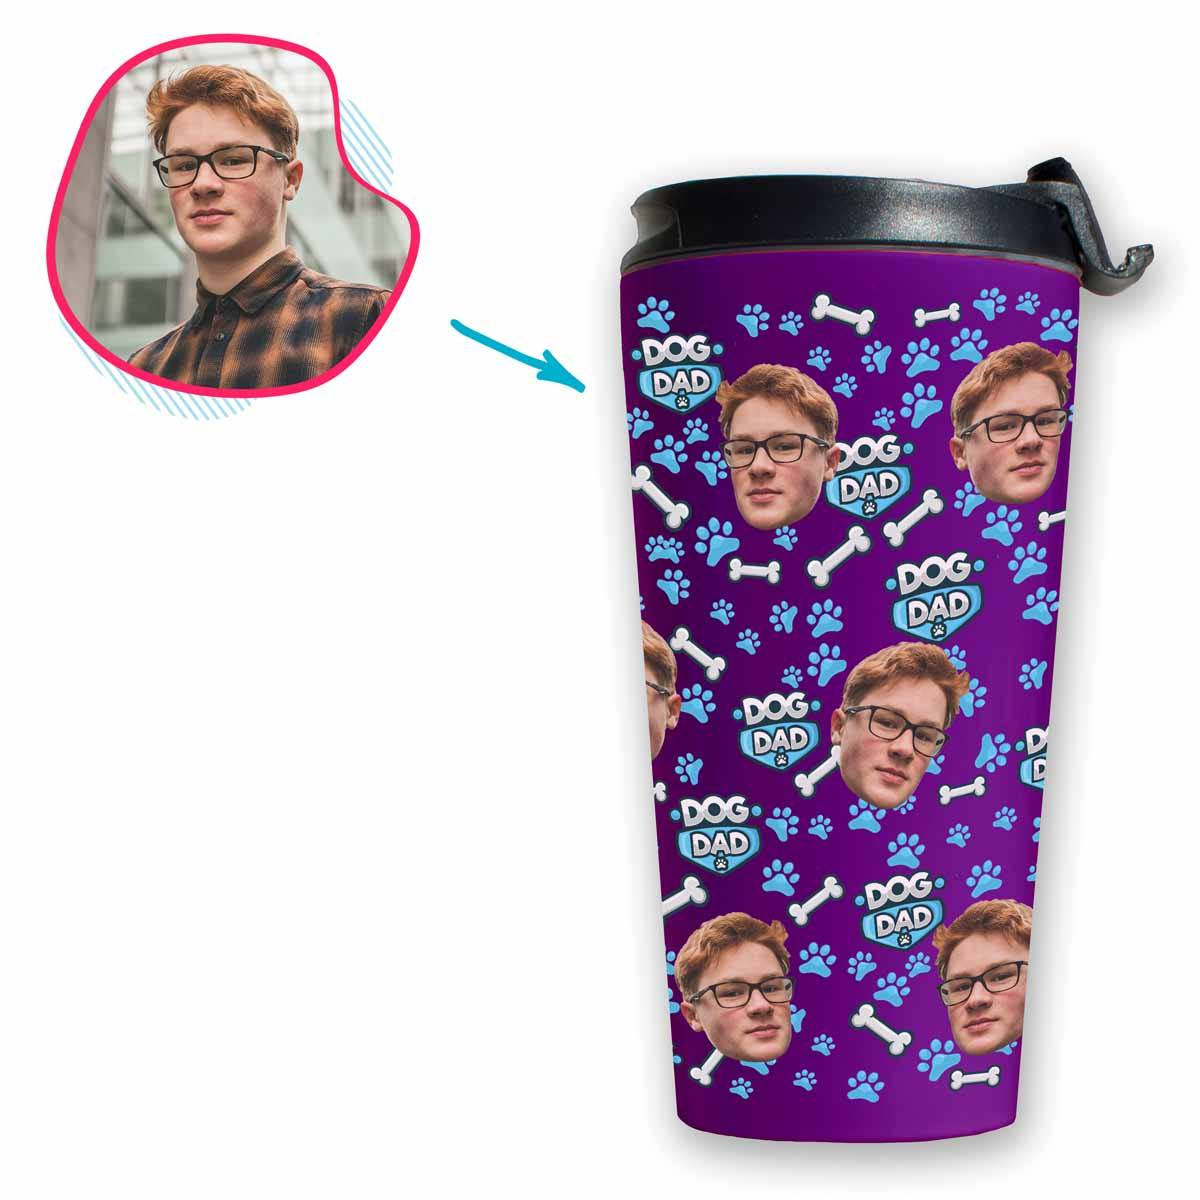 purple Dog Dad travel mug personalized with photo of face printed on it